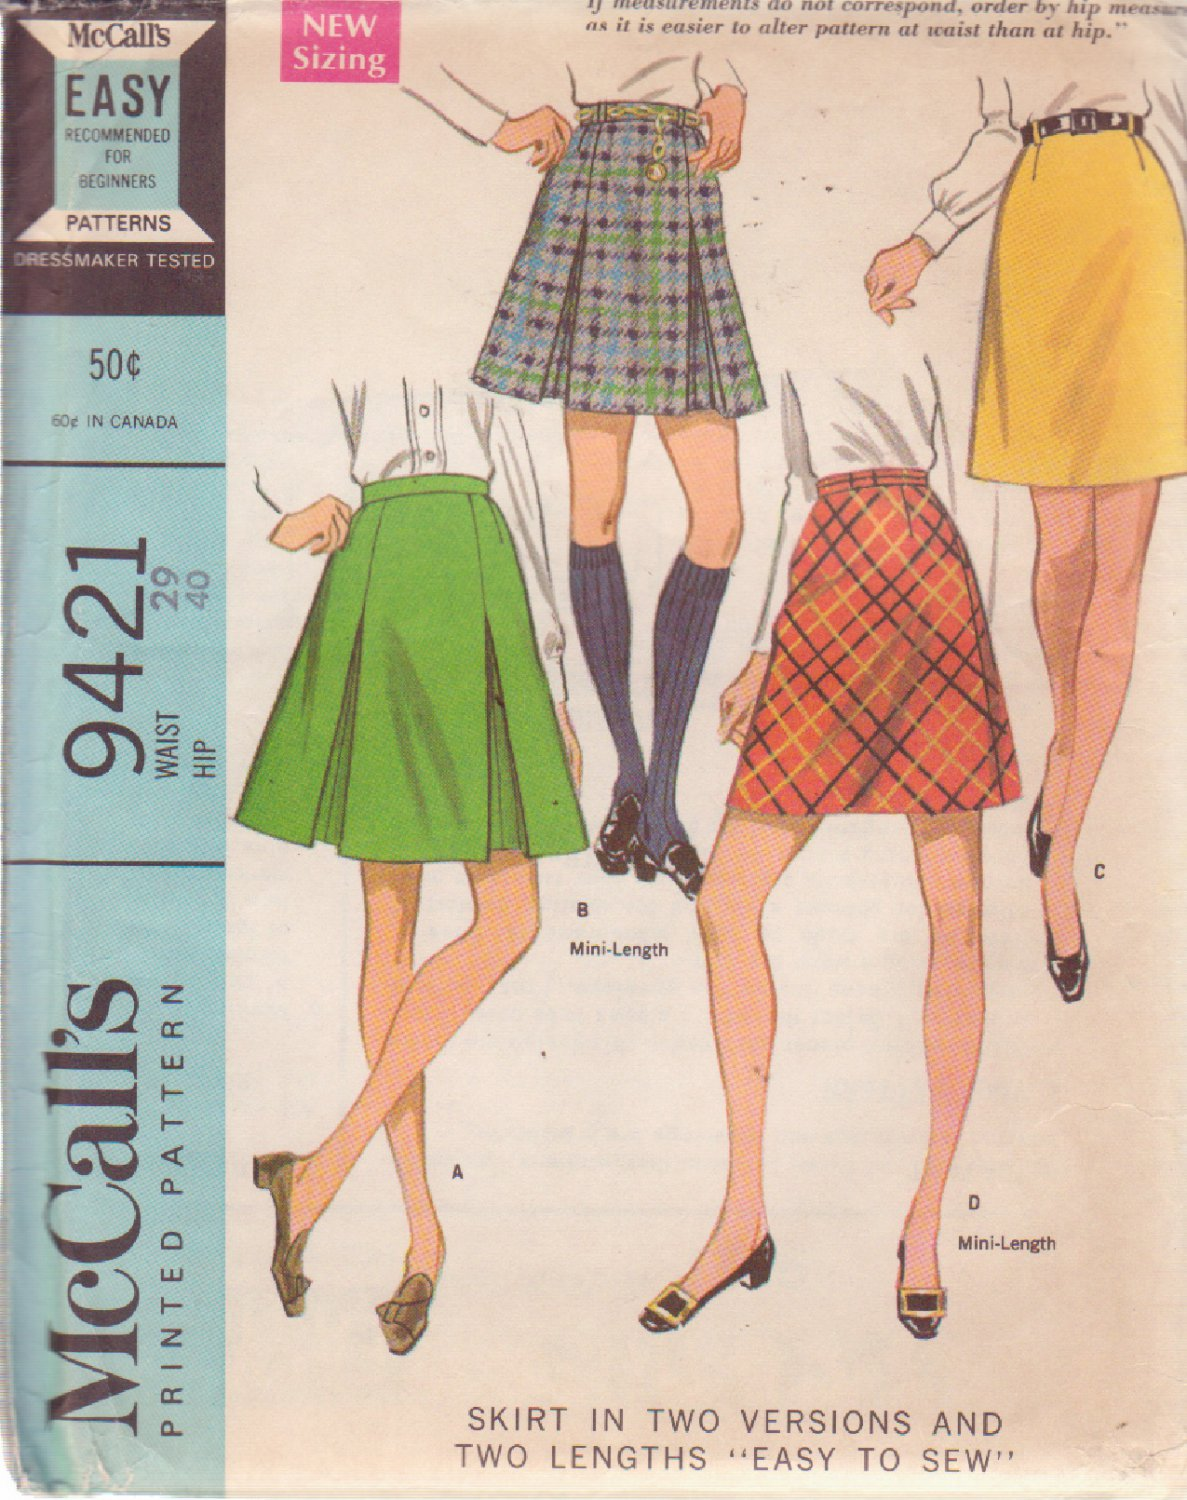 McCALL'S VINTAGE PATTERN 9421 MISSES' SKIRT IN 4 VARIATIONS SIZE 29 WAIST